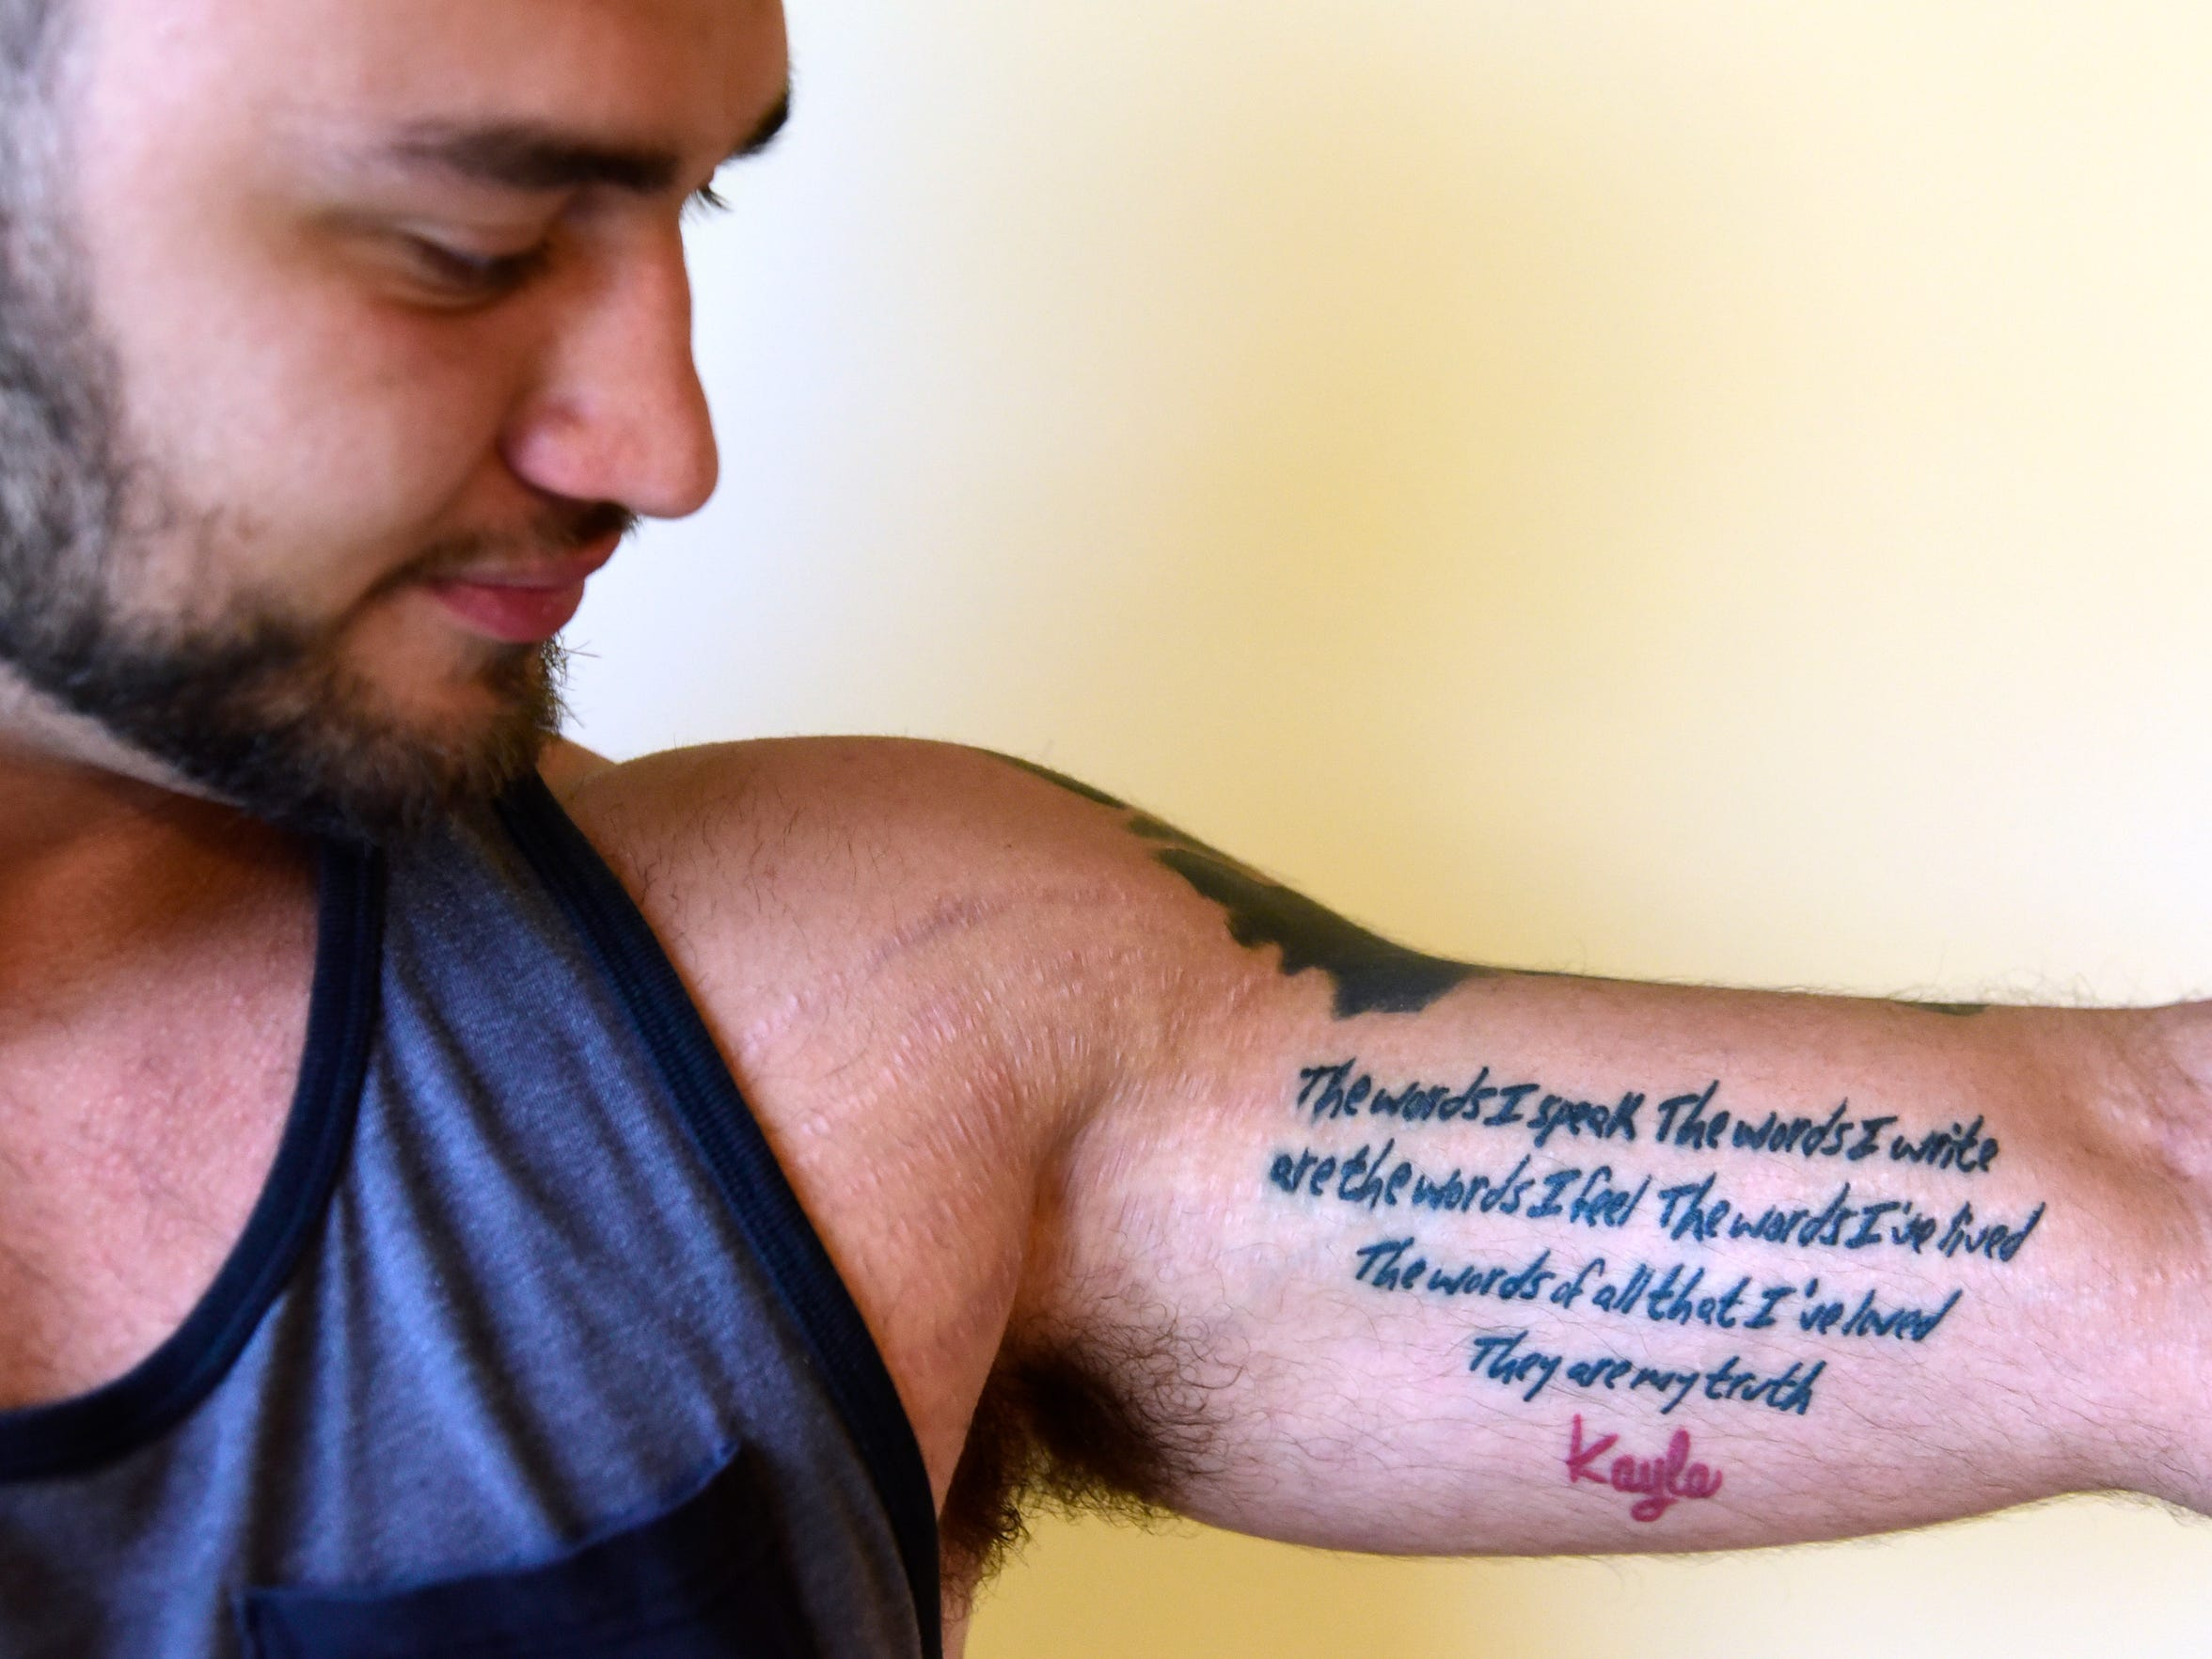 """Richie Webber has Kayla Davis' words tattooed on his arm: """"The words I speak. The words I write are the words I feel. The words I've lived. The words of all that I've loved. They are my truth."""""""